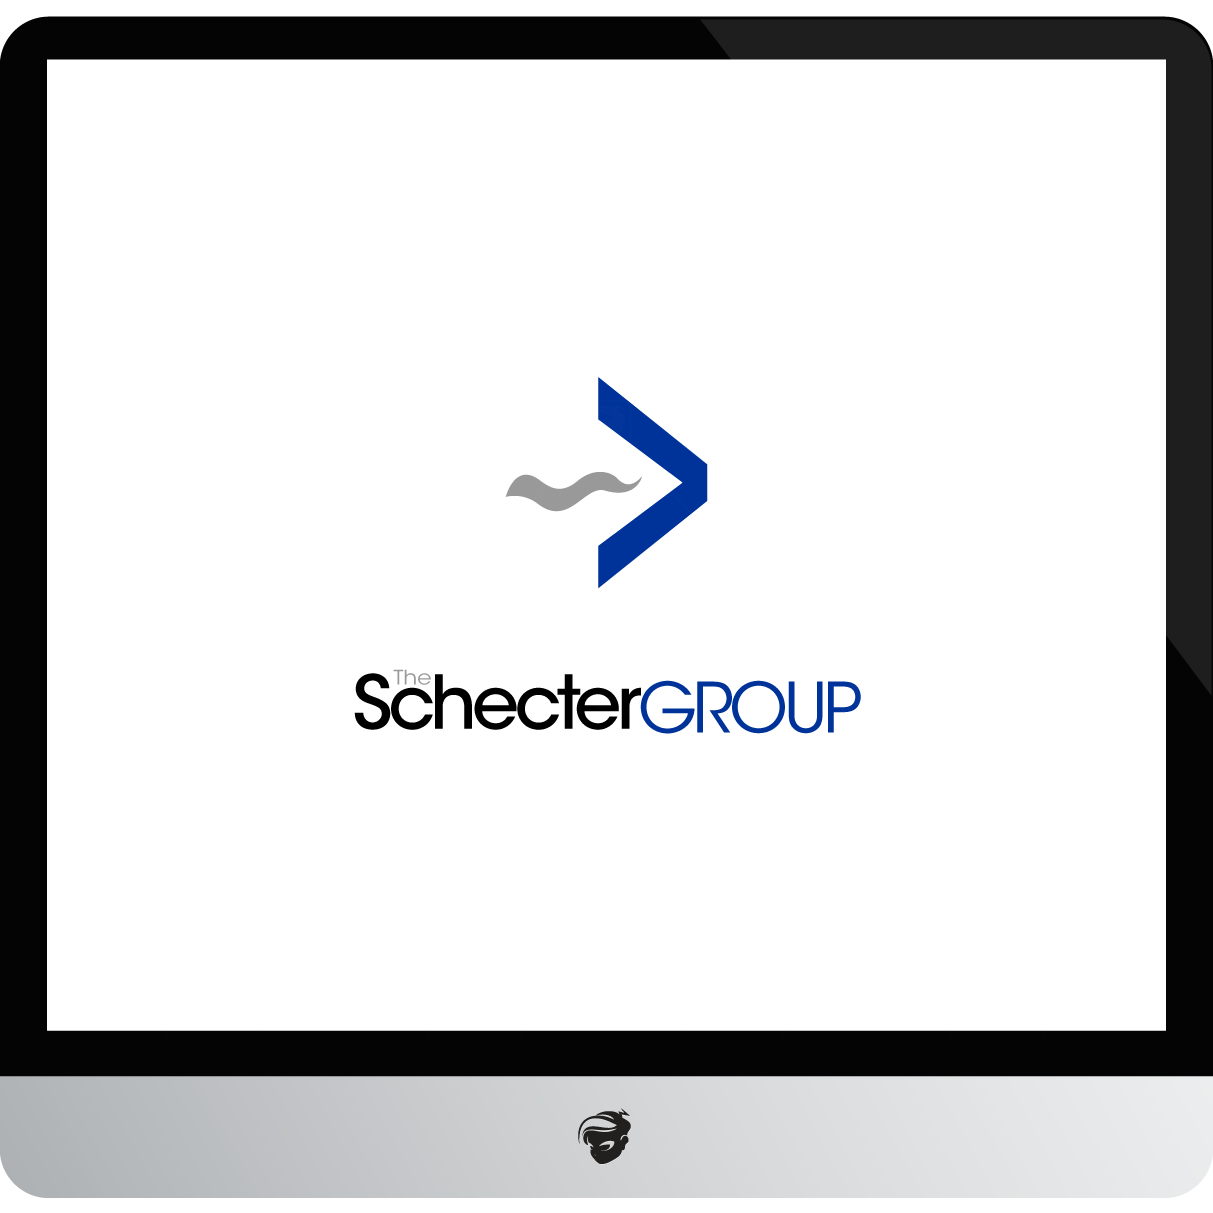 Logo Design by zesthar - Entry No. 69 in the Logo Design Contest Inspiring Logo Design for The Schecter Group.